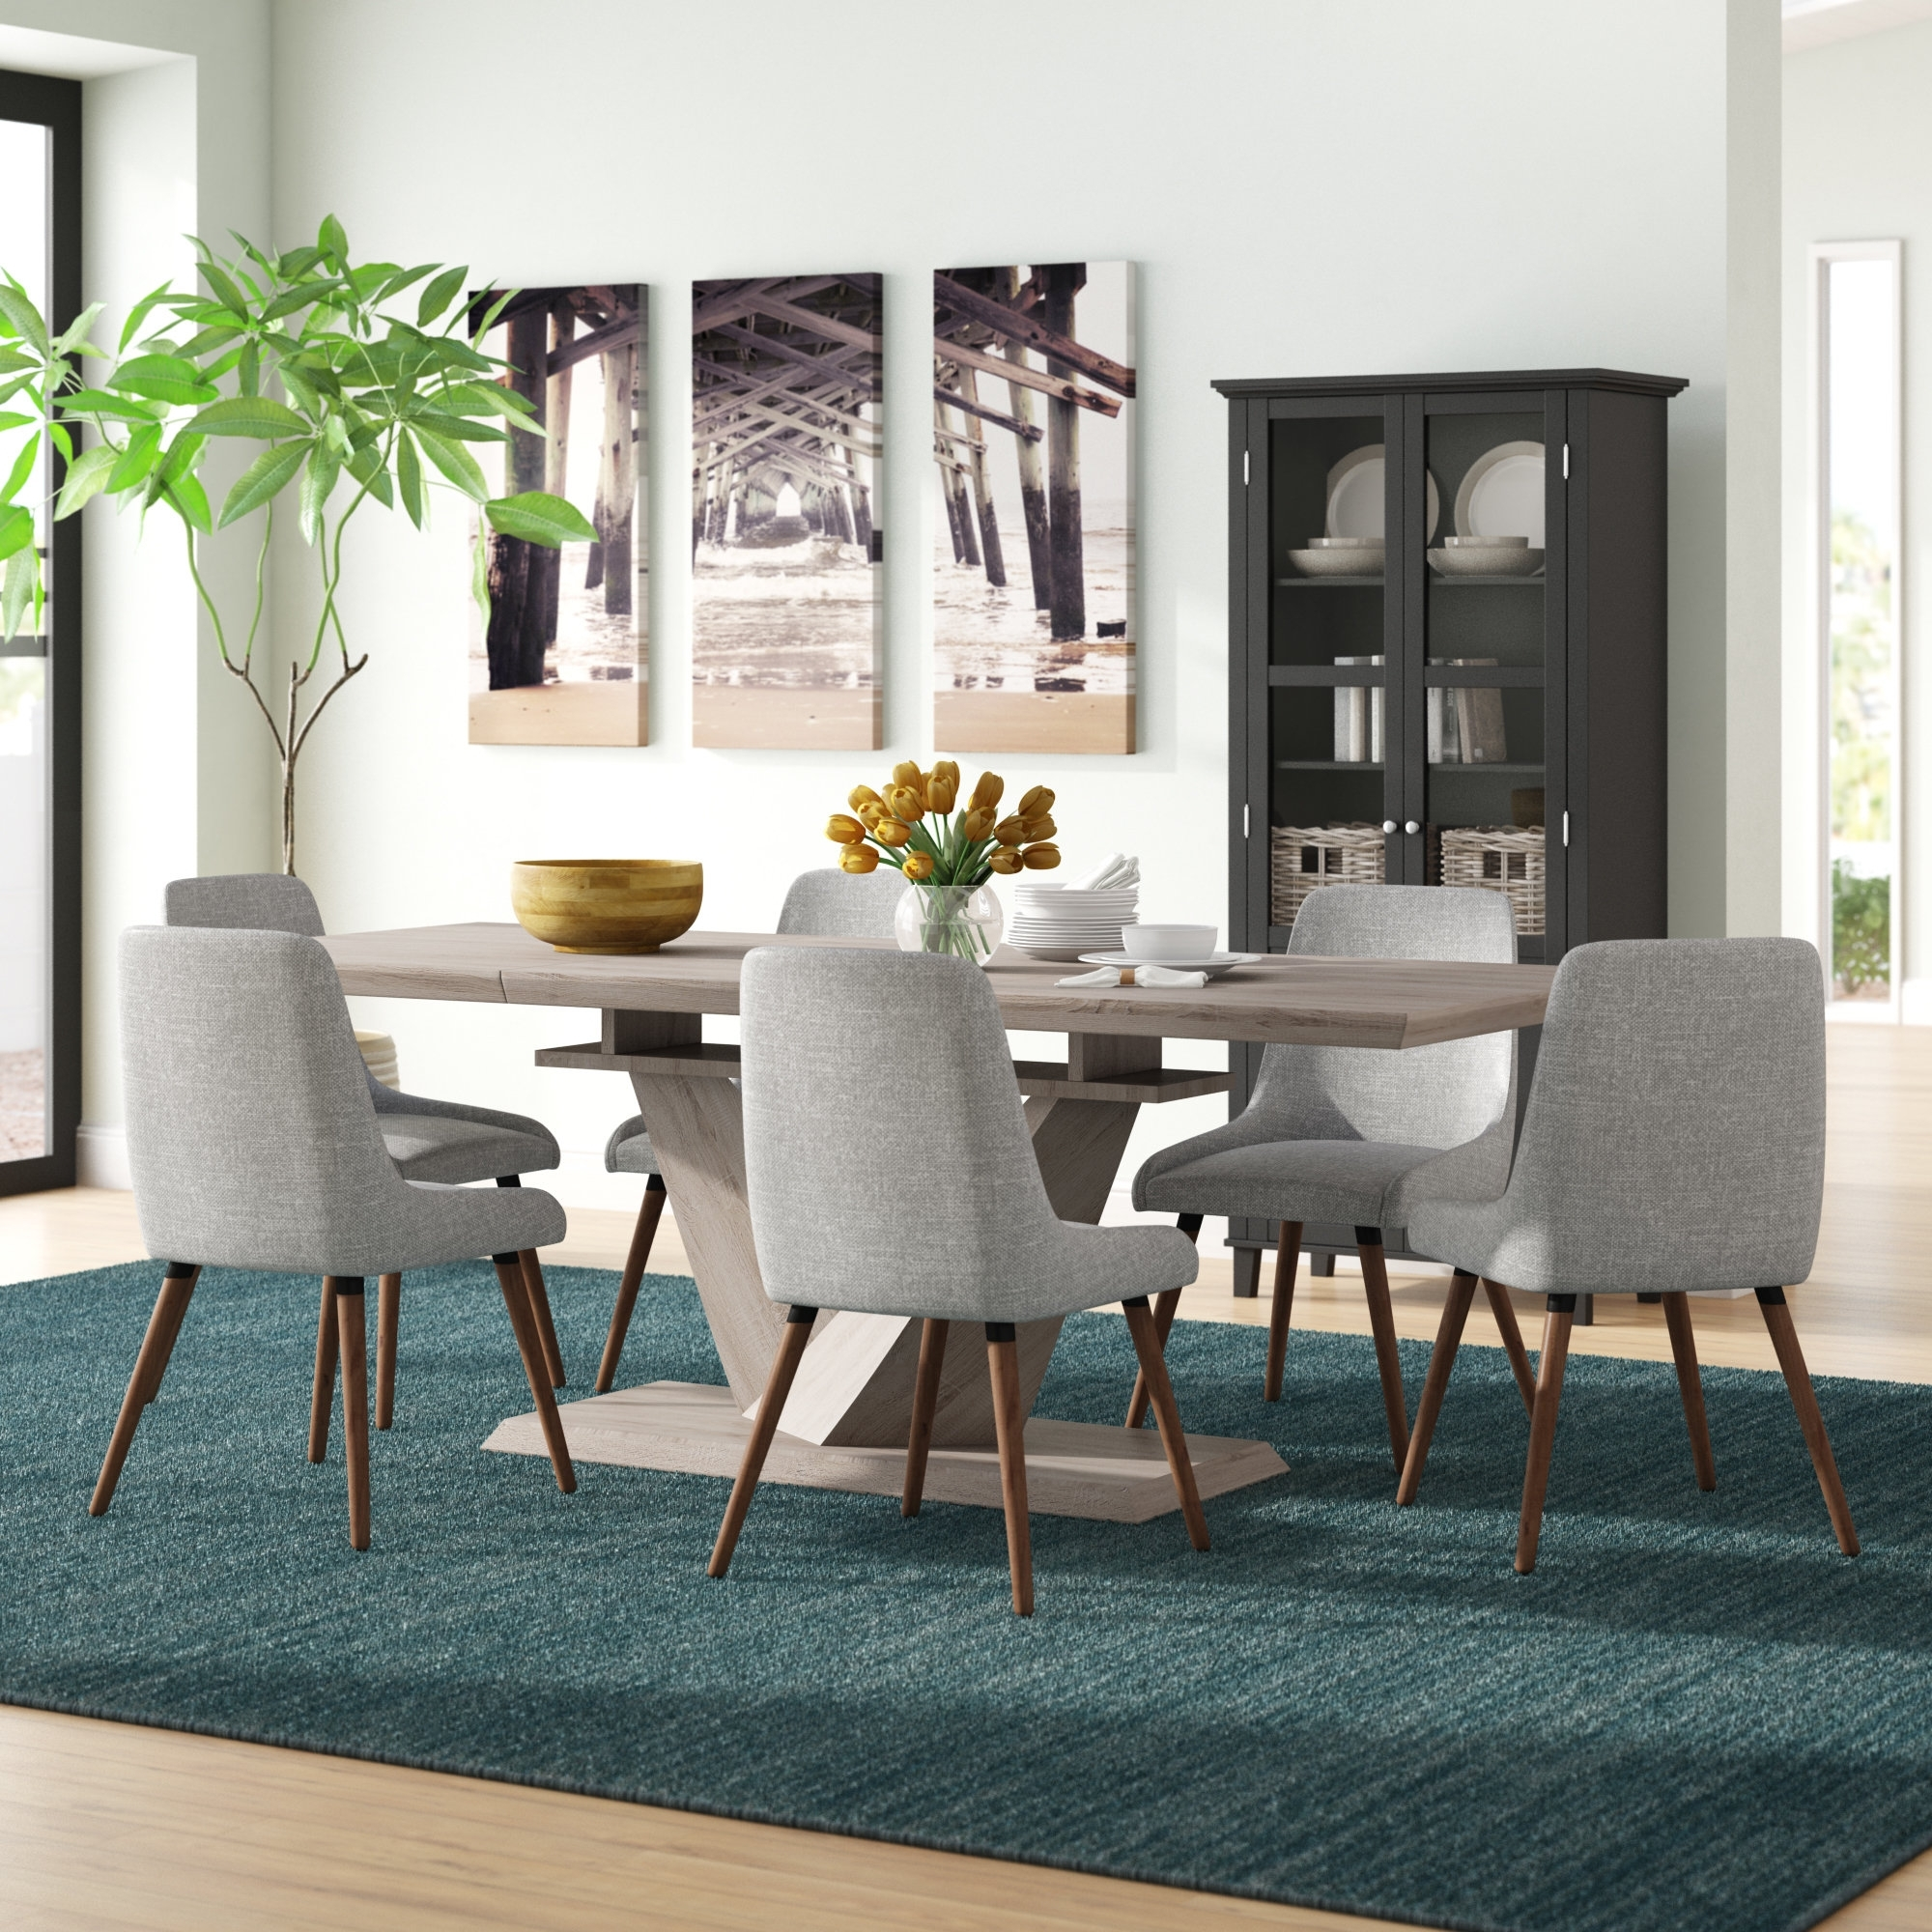 Simmers 7 Piece Dining Set (View 12 of 25)